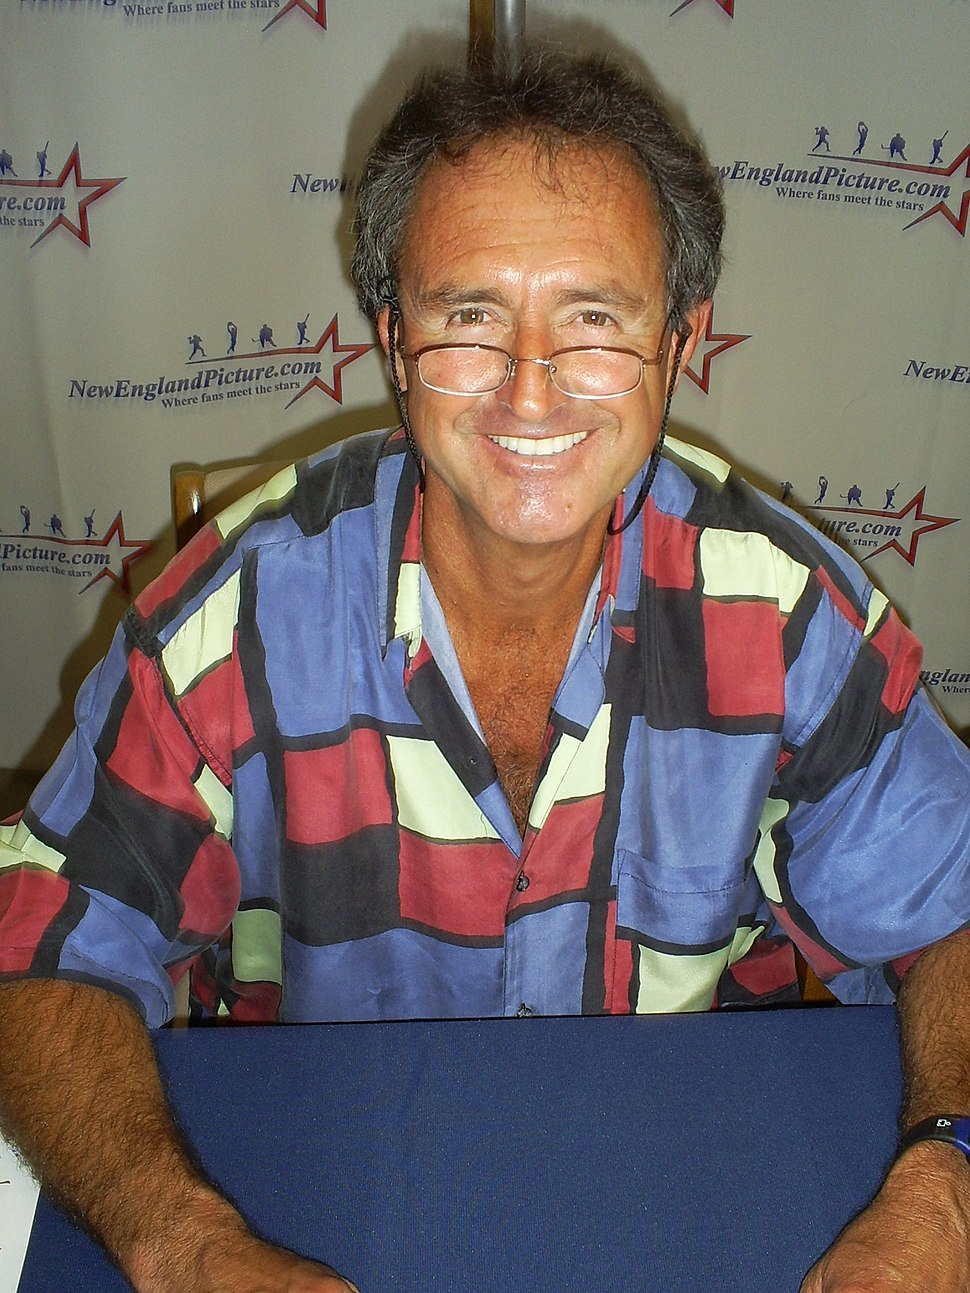 Fred Lynn at an autograph signing in Manchester, New Hampshire